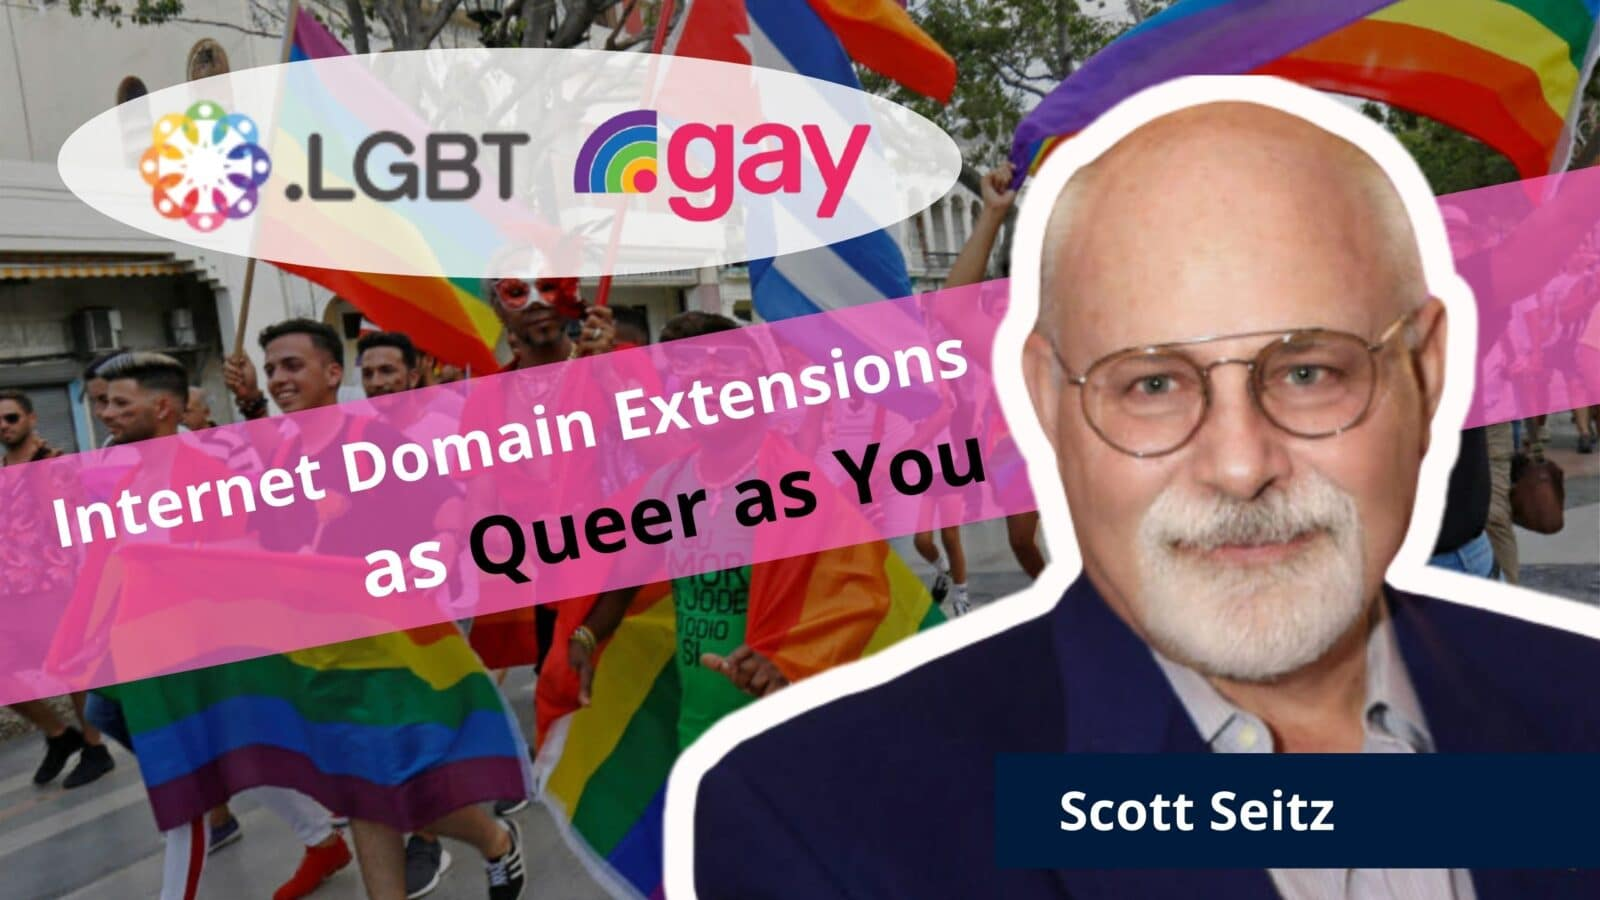 Scott Seitz PrideLife Domain Registration dot gay lgbt out gay entrepreneur lgbtq business owners lesbian queer online community OutBuro